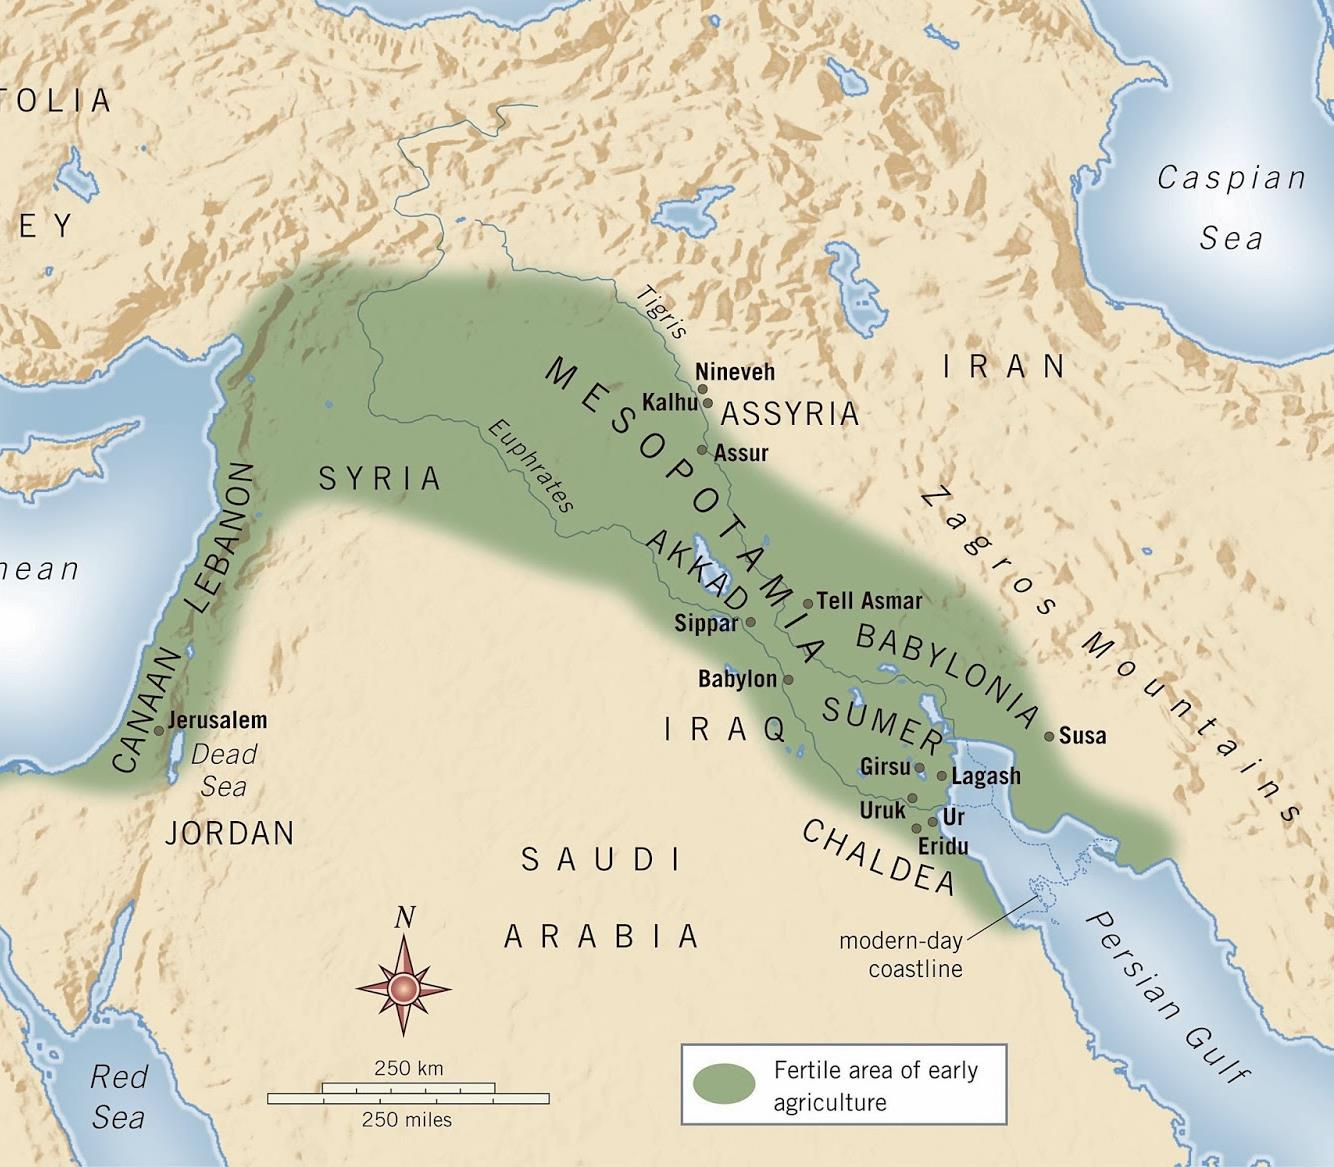 36. Region within the Middle East (Fertile Crescent ) that lies between the Tigris and Euphrates